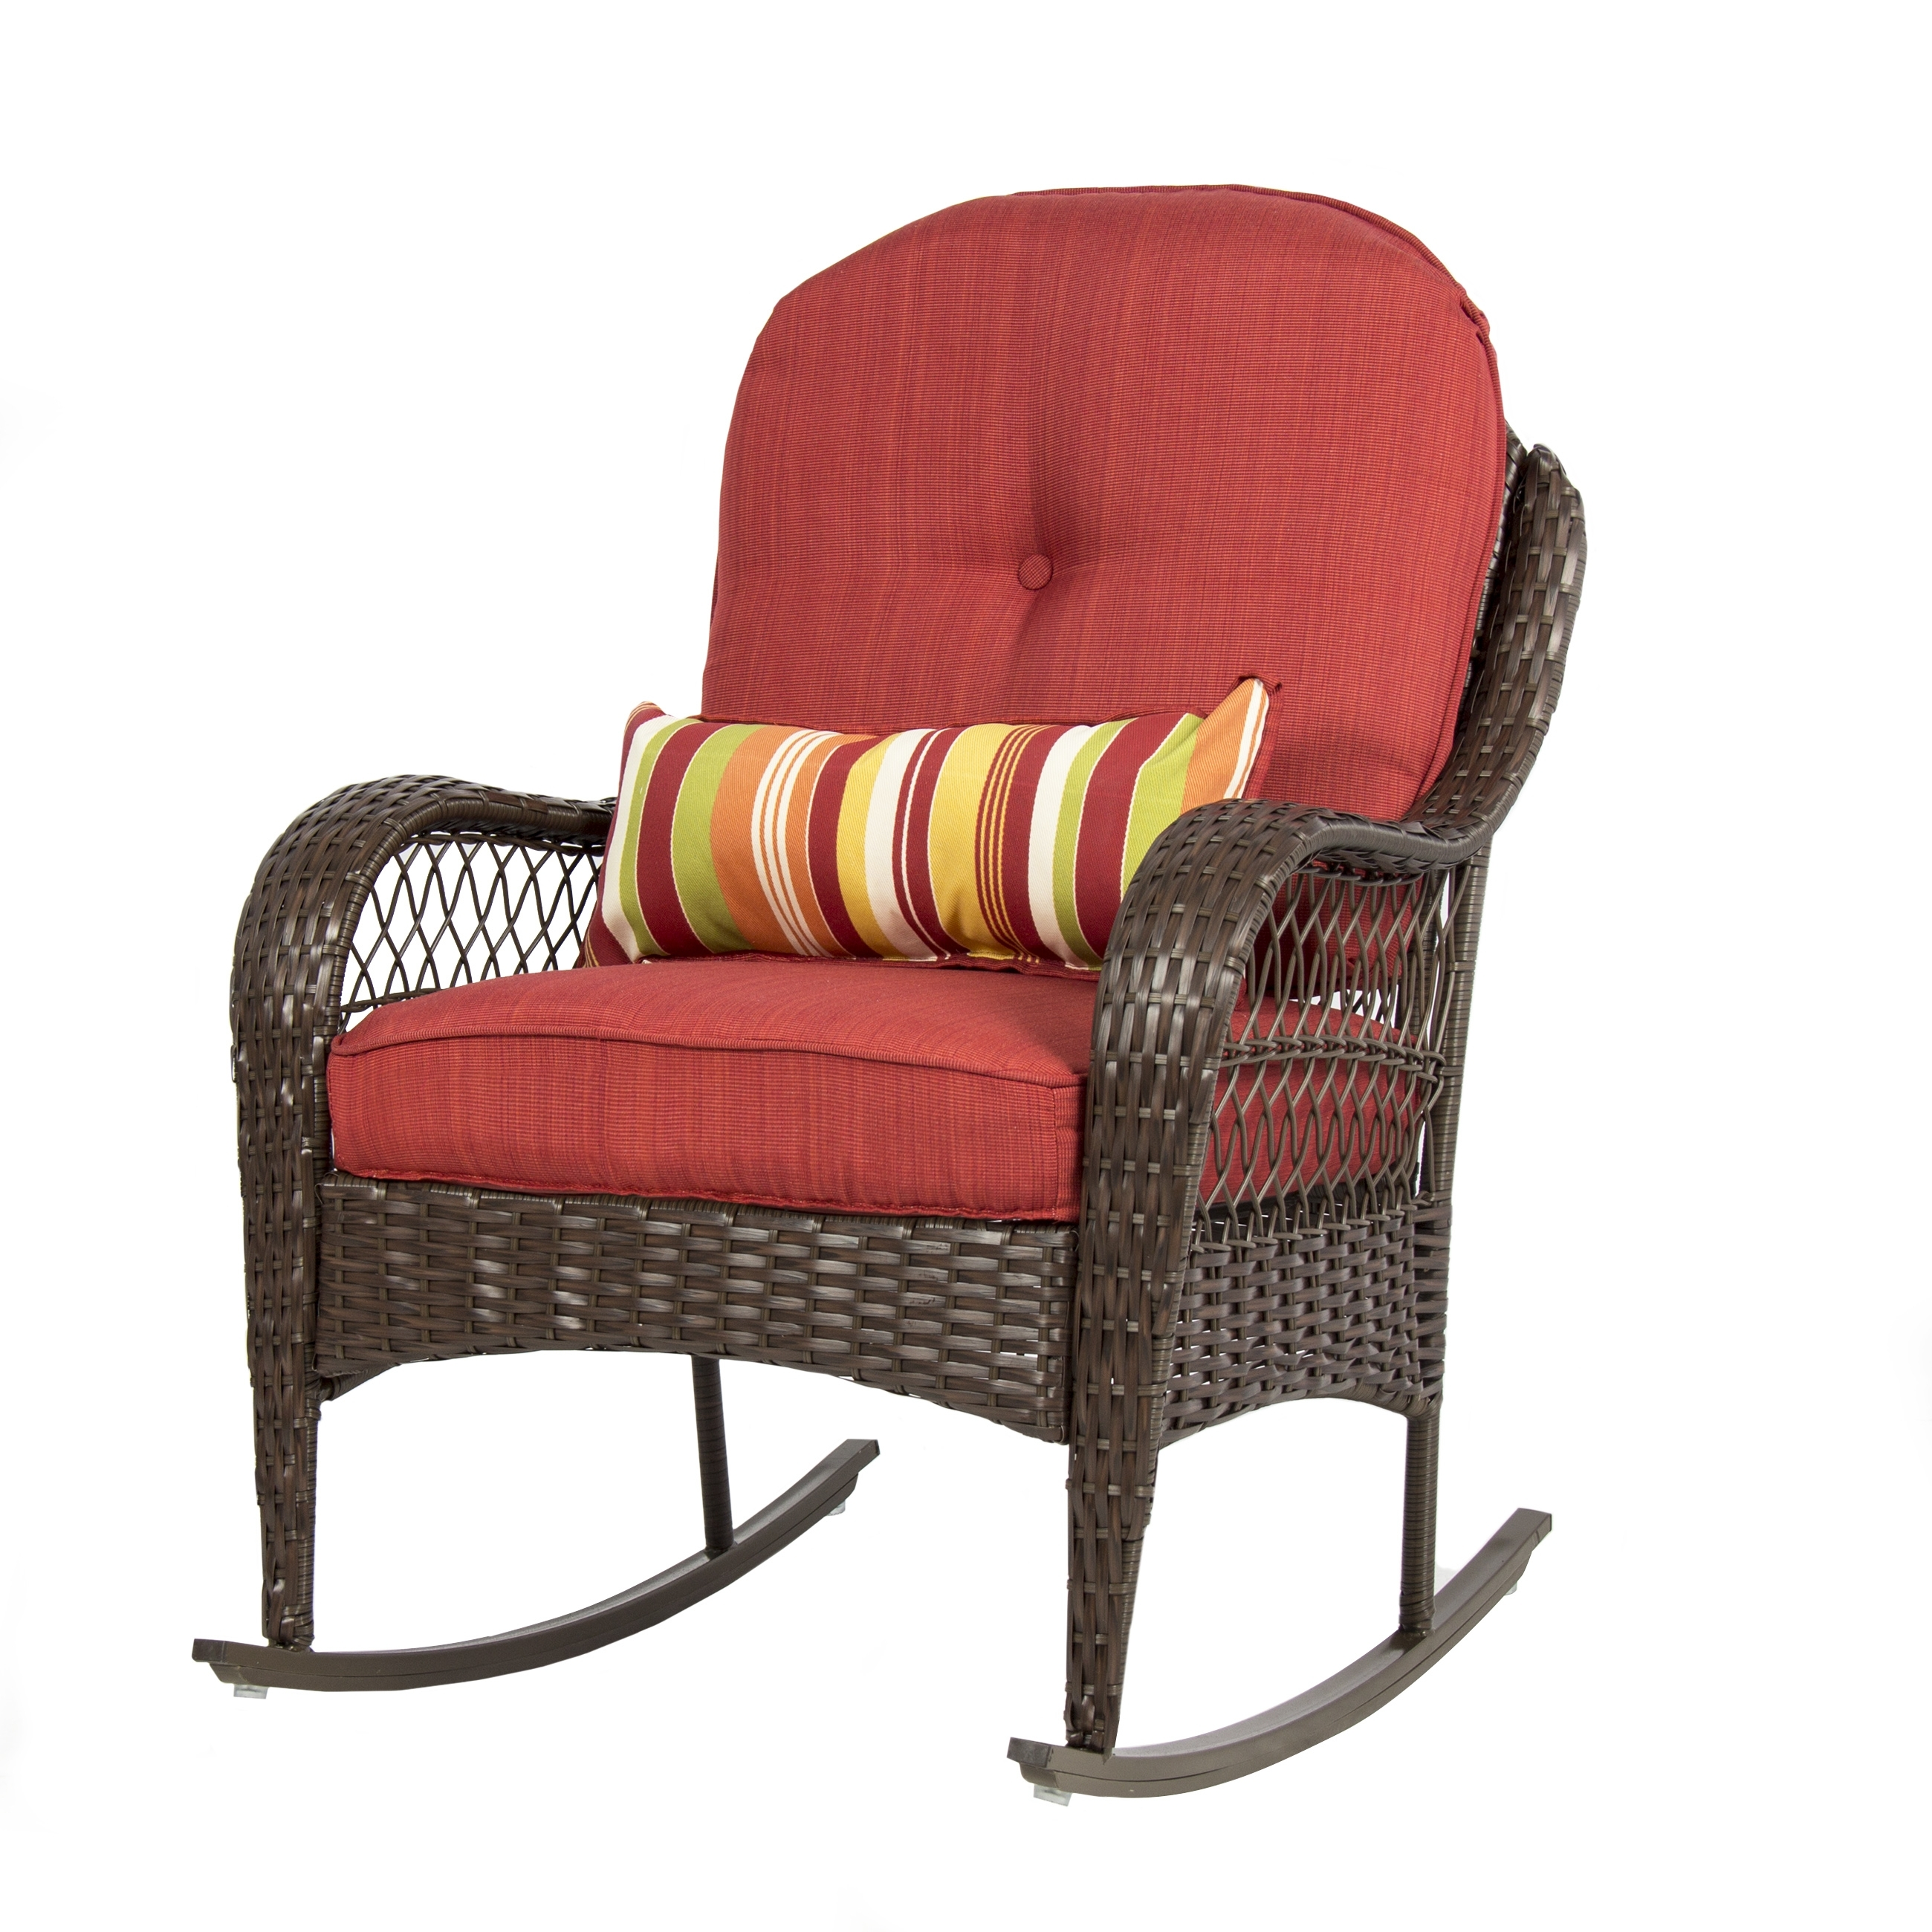 Most Recently Released Best Choice Products Wicker Rocking Chair Patio Porch Deck Furniture Regarding Walmart Rocking Chairs (View 2 of 15)